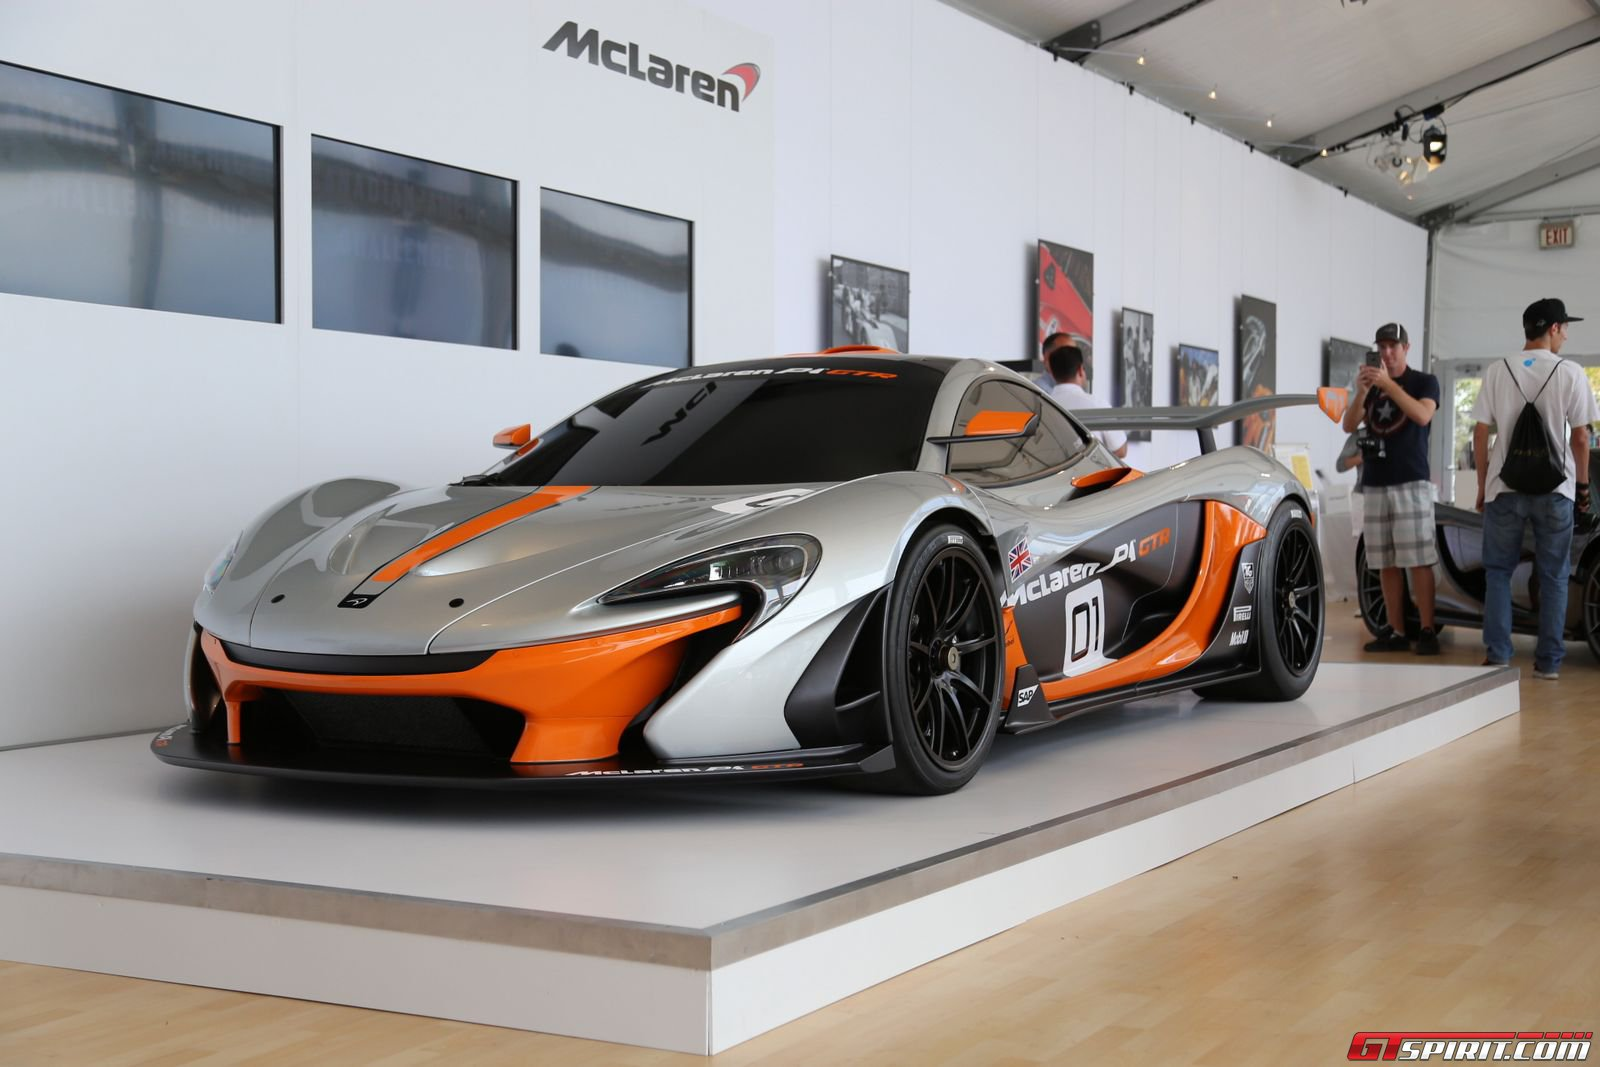 monterey 2014 mclaren p1 gtr design concept gtspirit. Black Bedroom Furniture Sets. Home Design Ideas